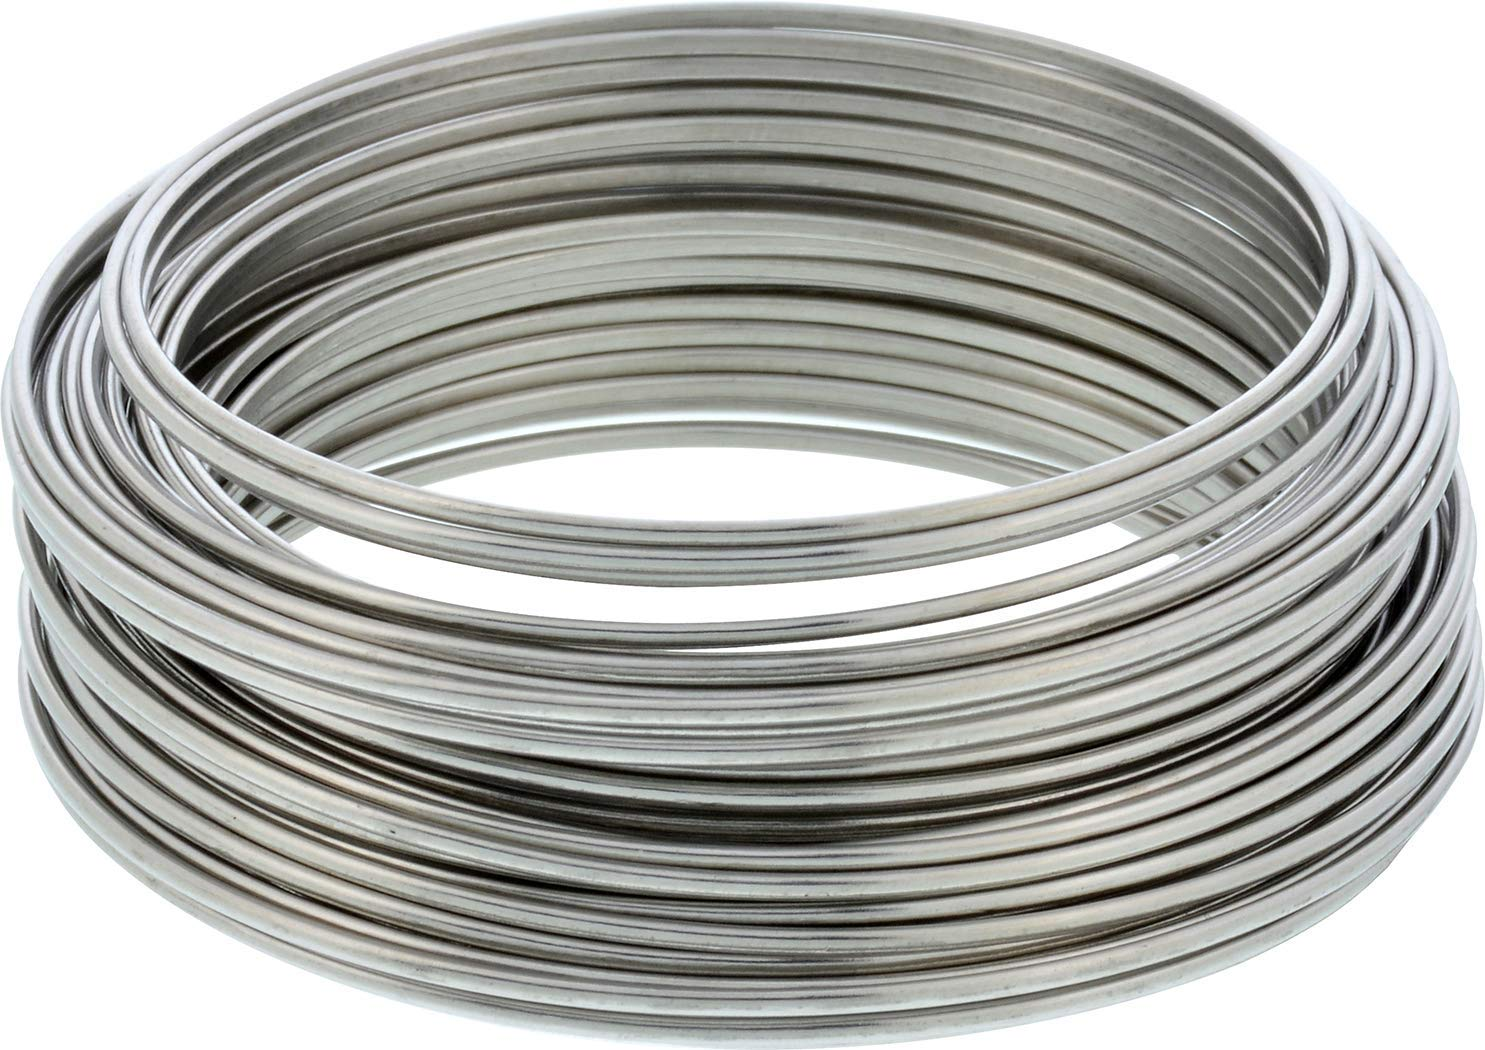 The Hillman Group 123114 Inventory cleanup selling sale Stainless Wire Steel 30' overseas Hobby